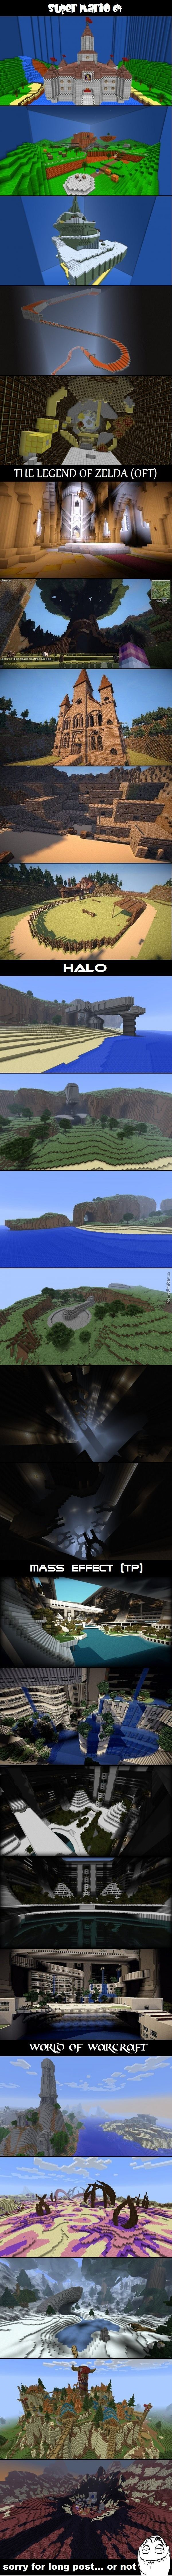 Video game maps in minecraft= awesome! Love the temple of time!